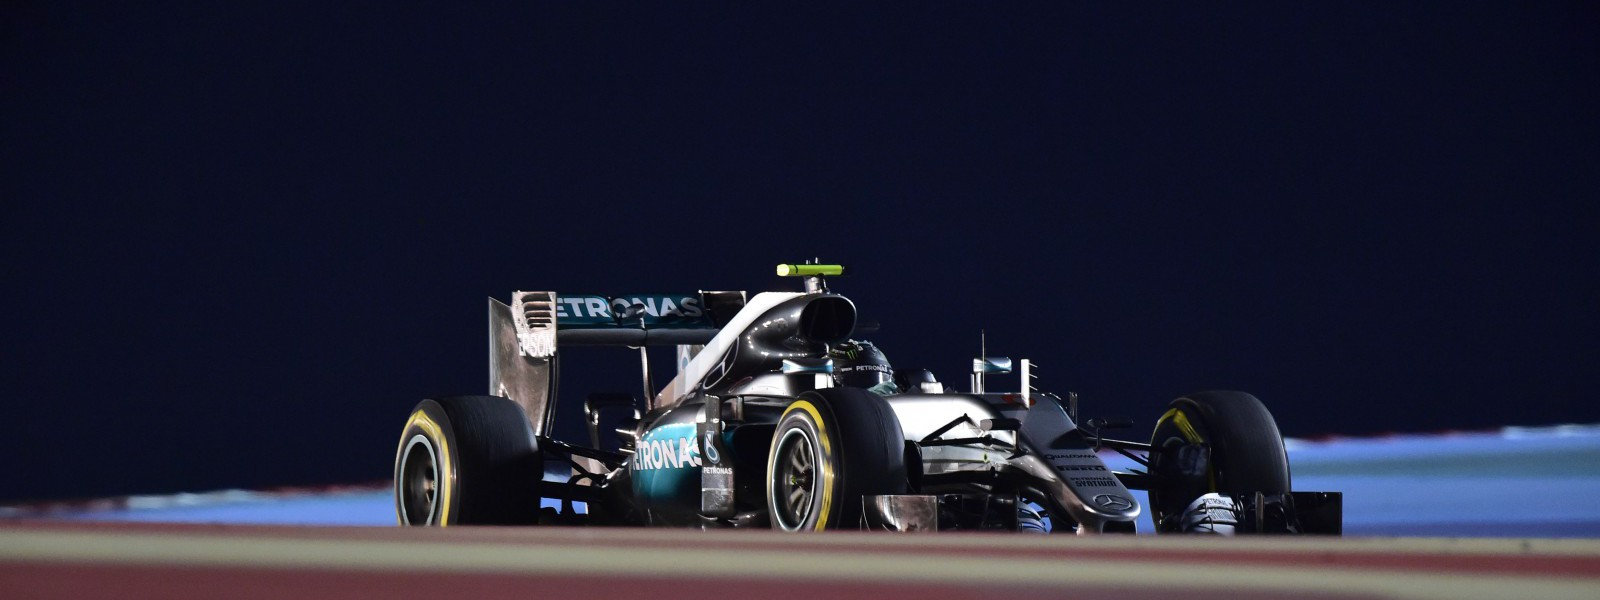 Motorsports: FIA Formula One World Championship 2016, Grand Prix of Bahrain,  #6 Nico Rosberg (GER, Mercedes AMG Petronas Formula One Team),  *** Local Caption *** +++ www.hoch-zwei.net +++ copyright: HOCH ZWEI +++